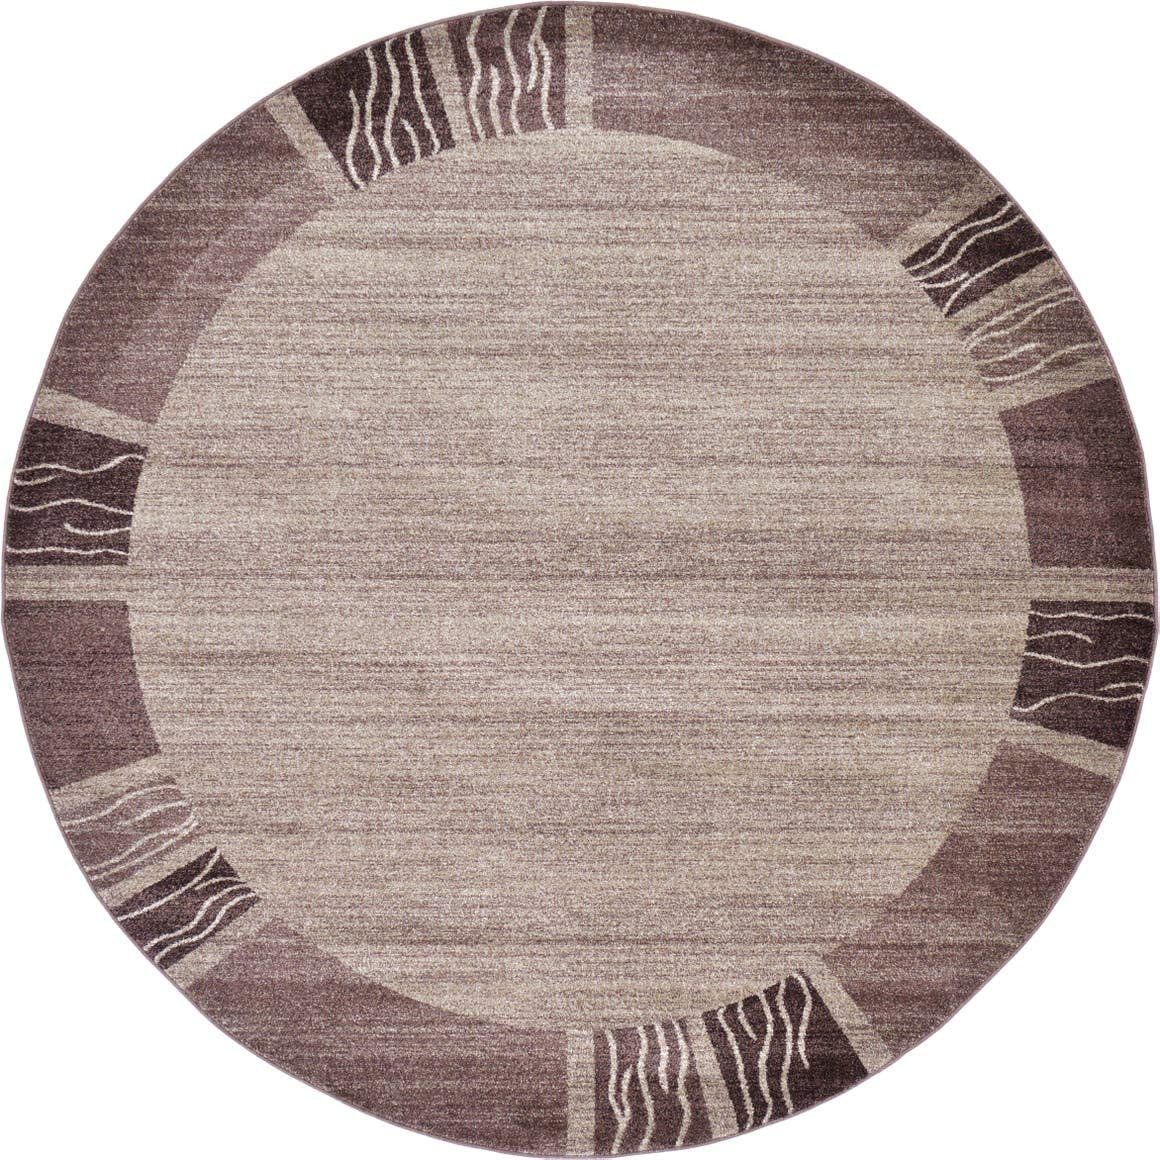 Unique Loom Del Mar Collection Contemporary Transitional Light Brown Round Rug 8 0 x 8 0